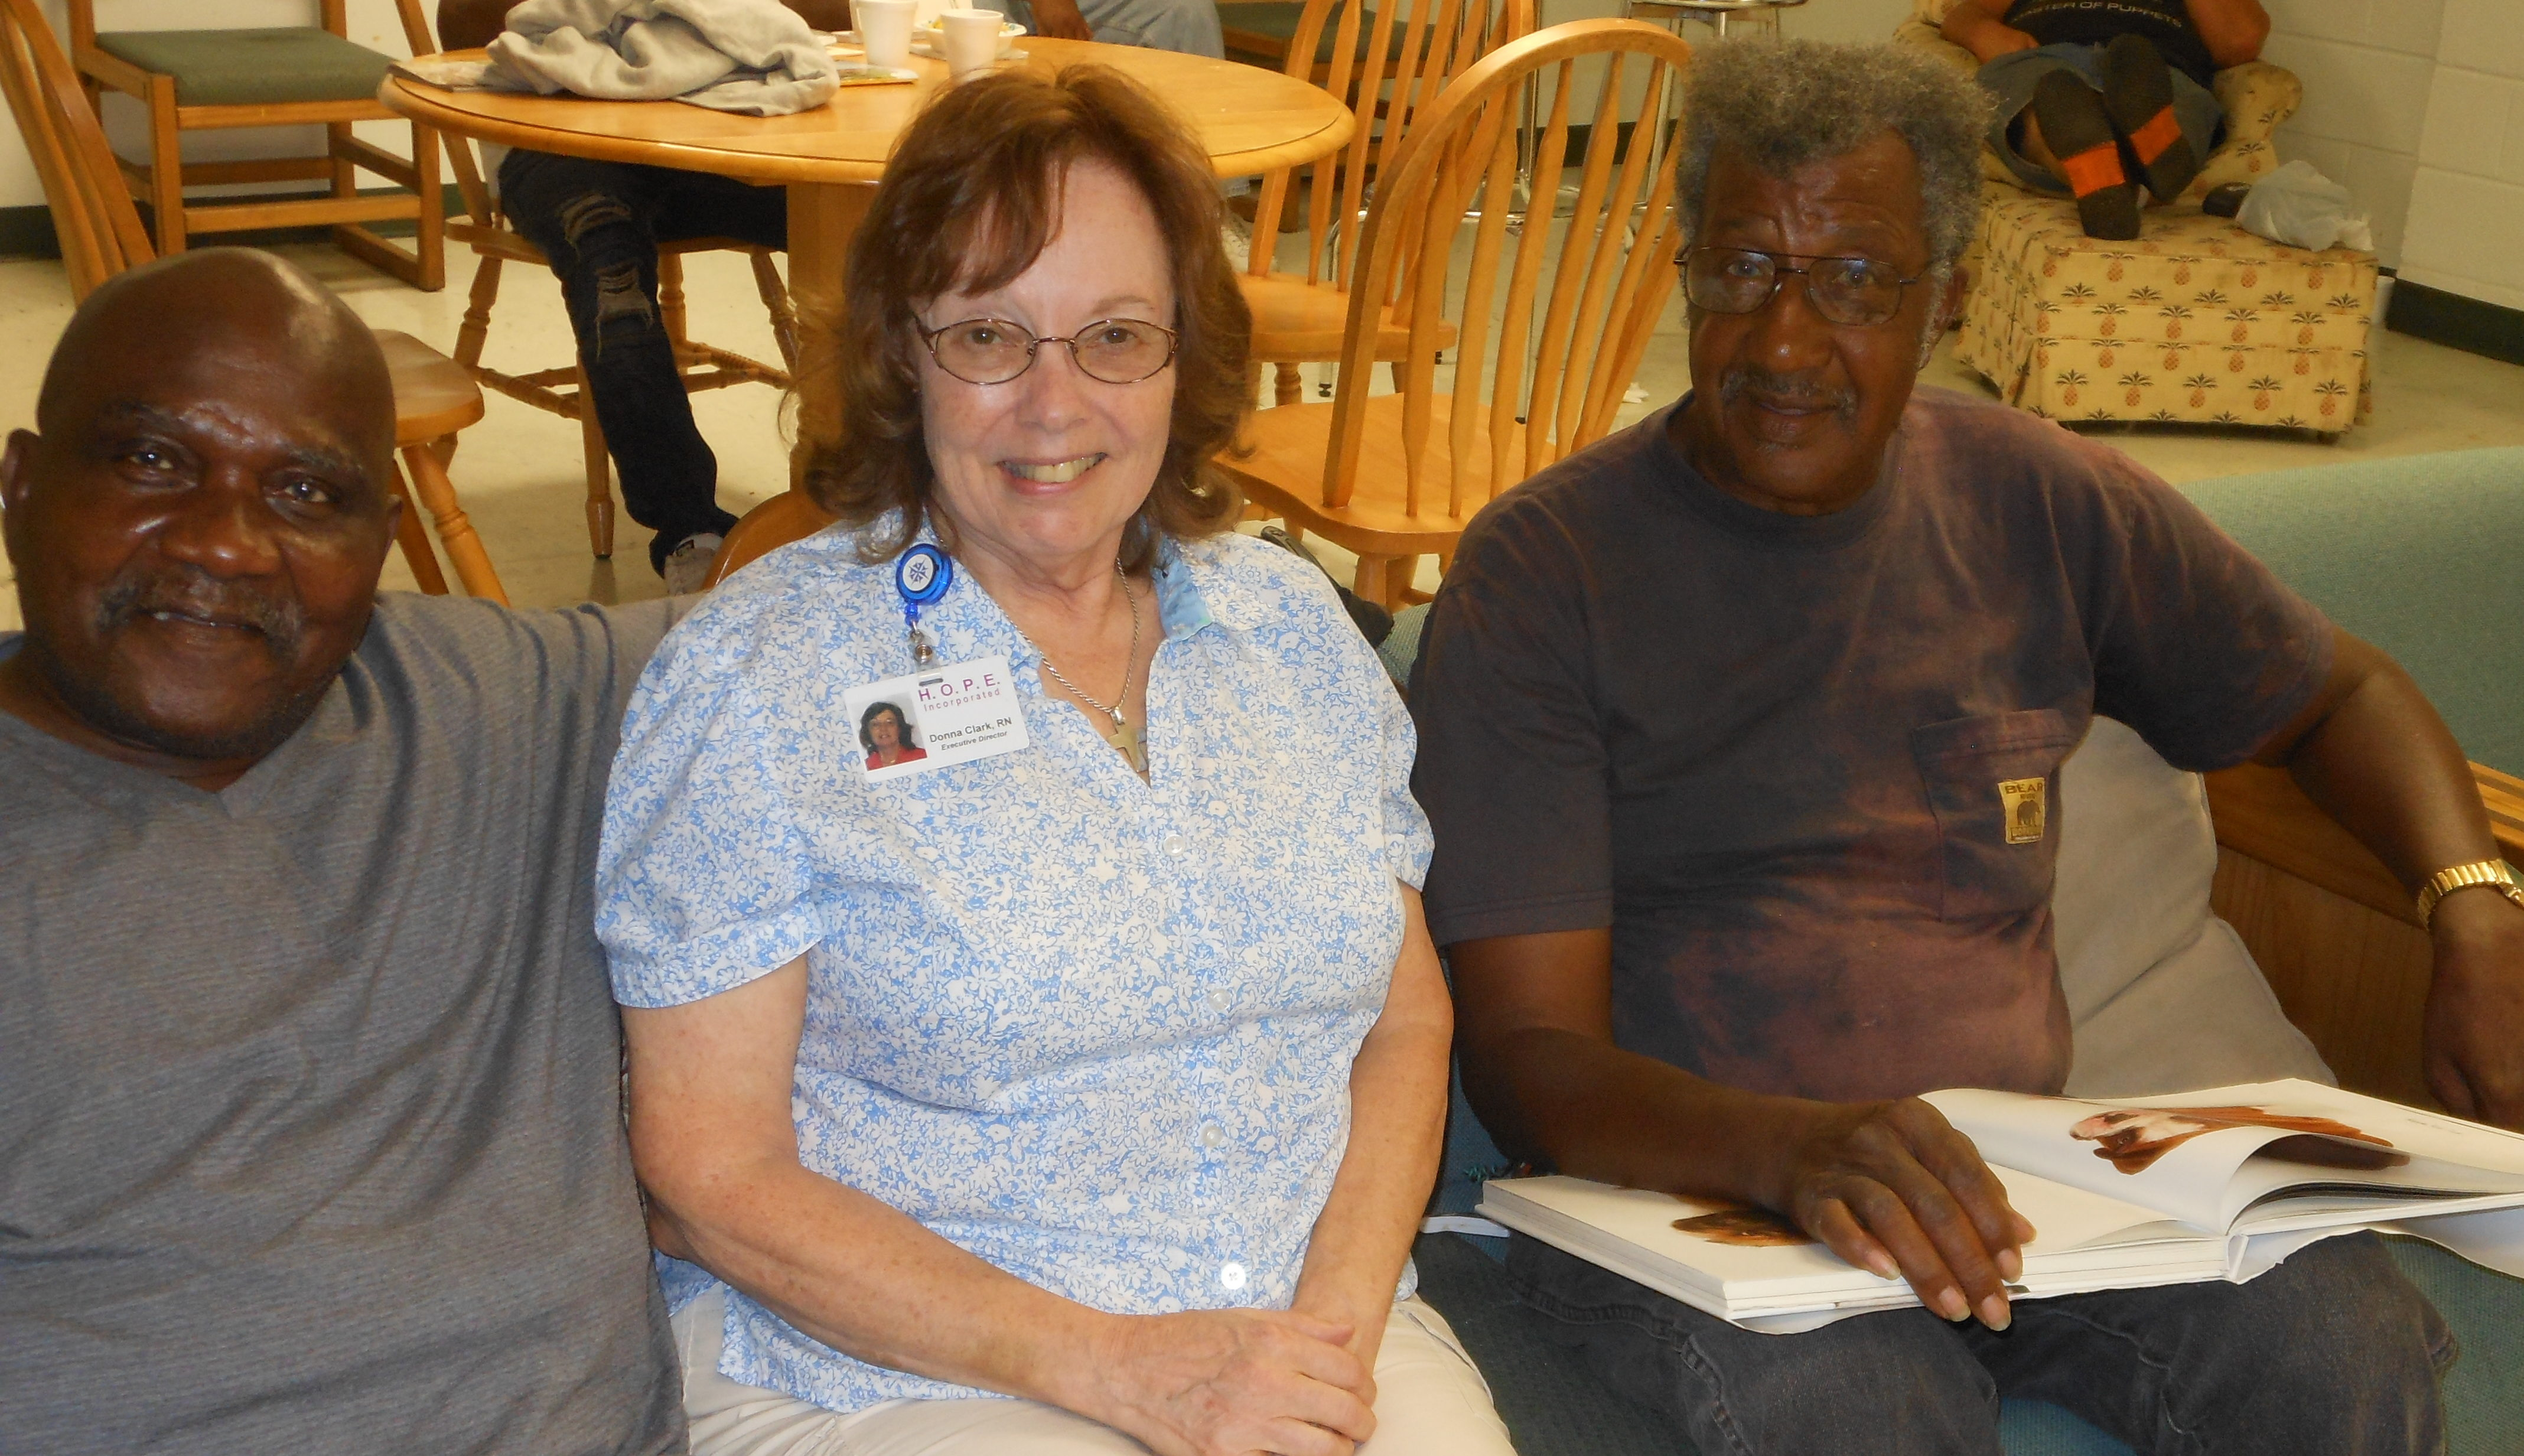 A man and woman on a couch facing the camera